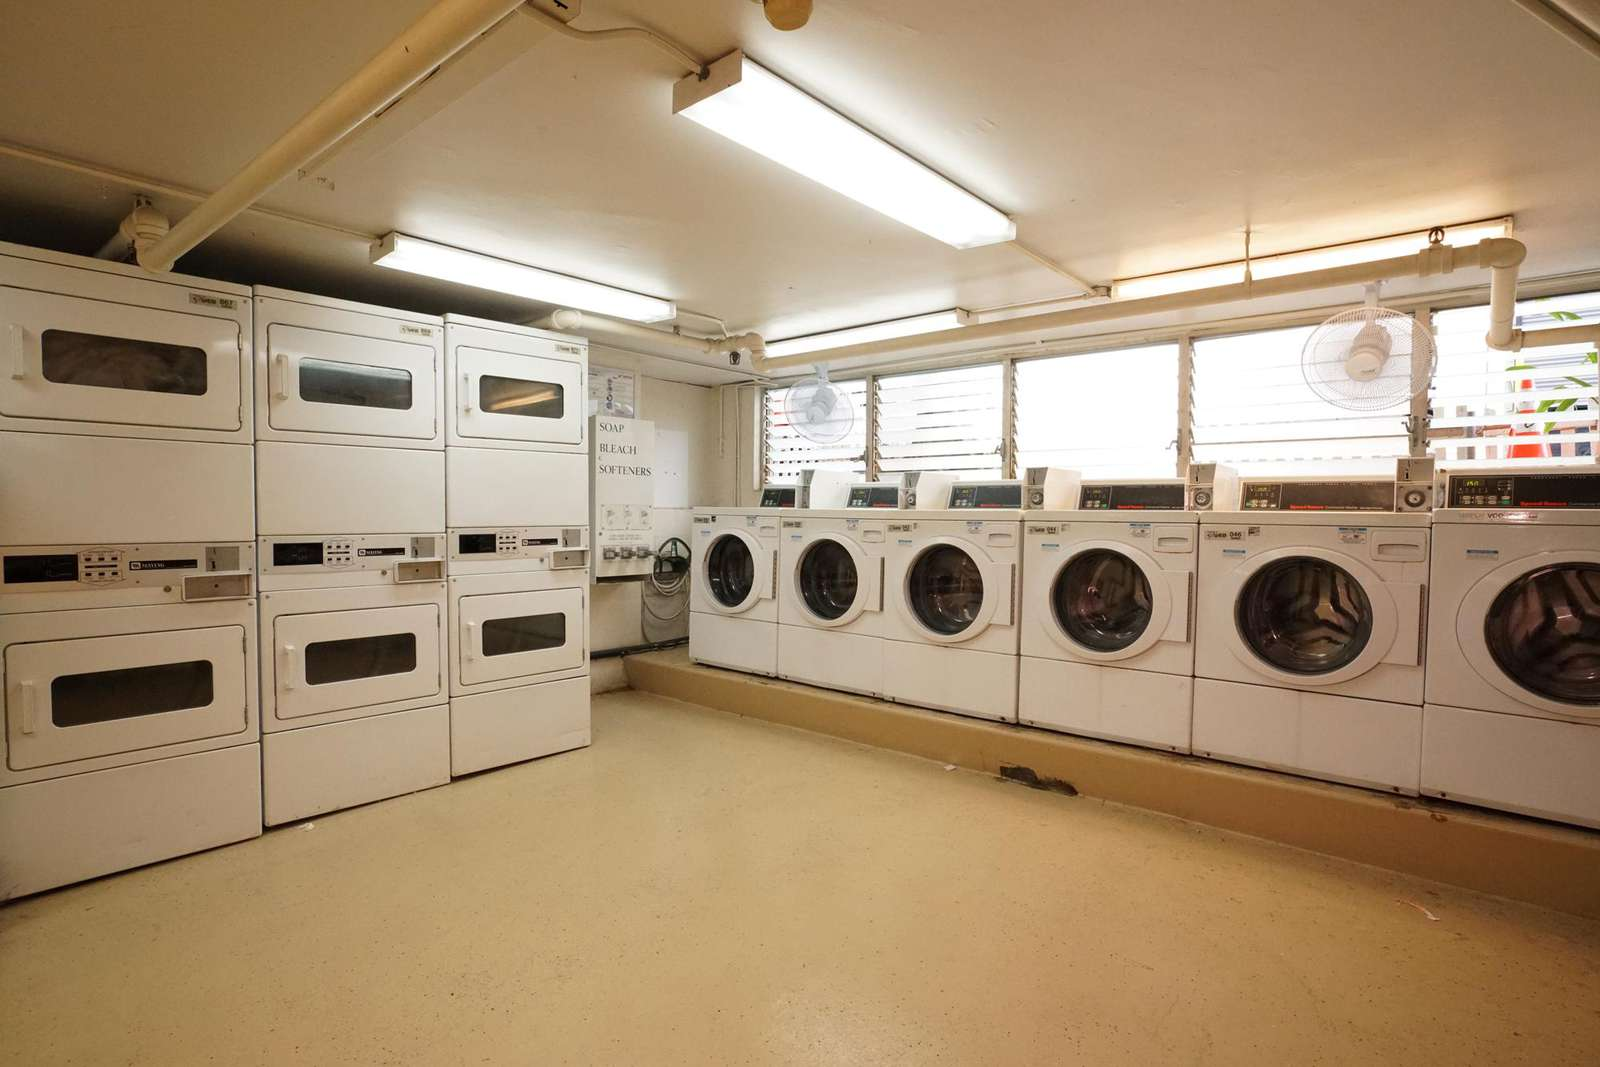 Ample coin-operated laundry machines just an elevator ride 4 floors down.